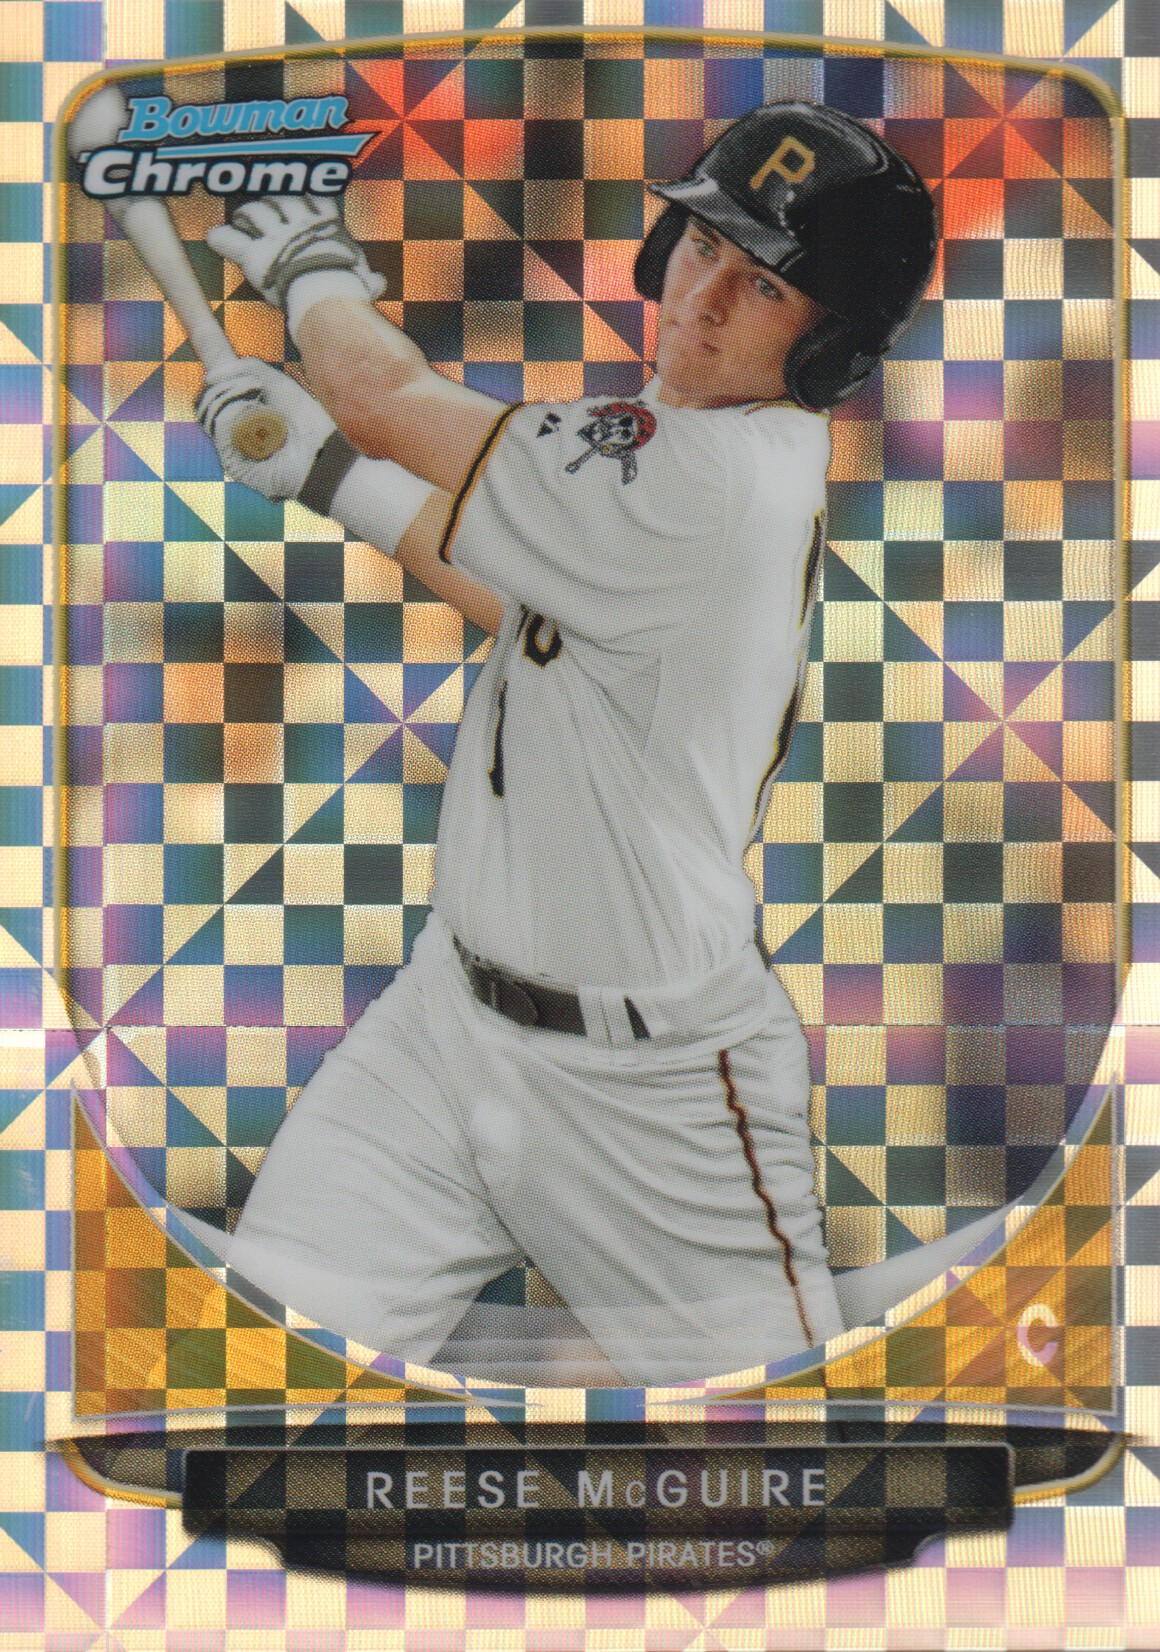 2013 Bowman Chrome Mini X-fractors #297 Reese McGuire